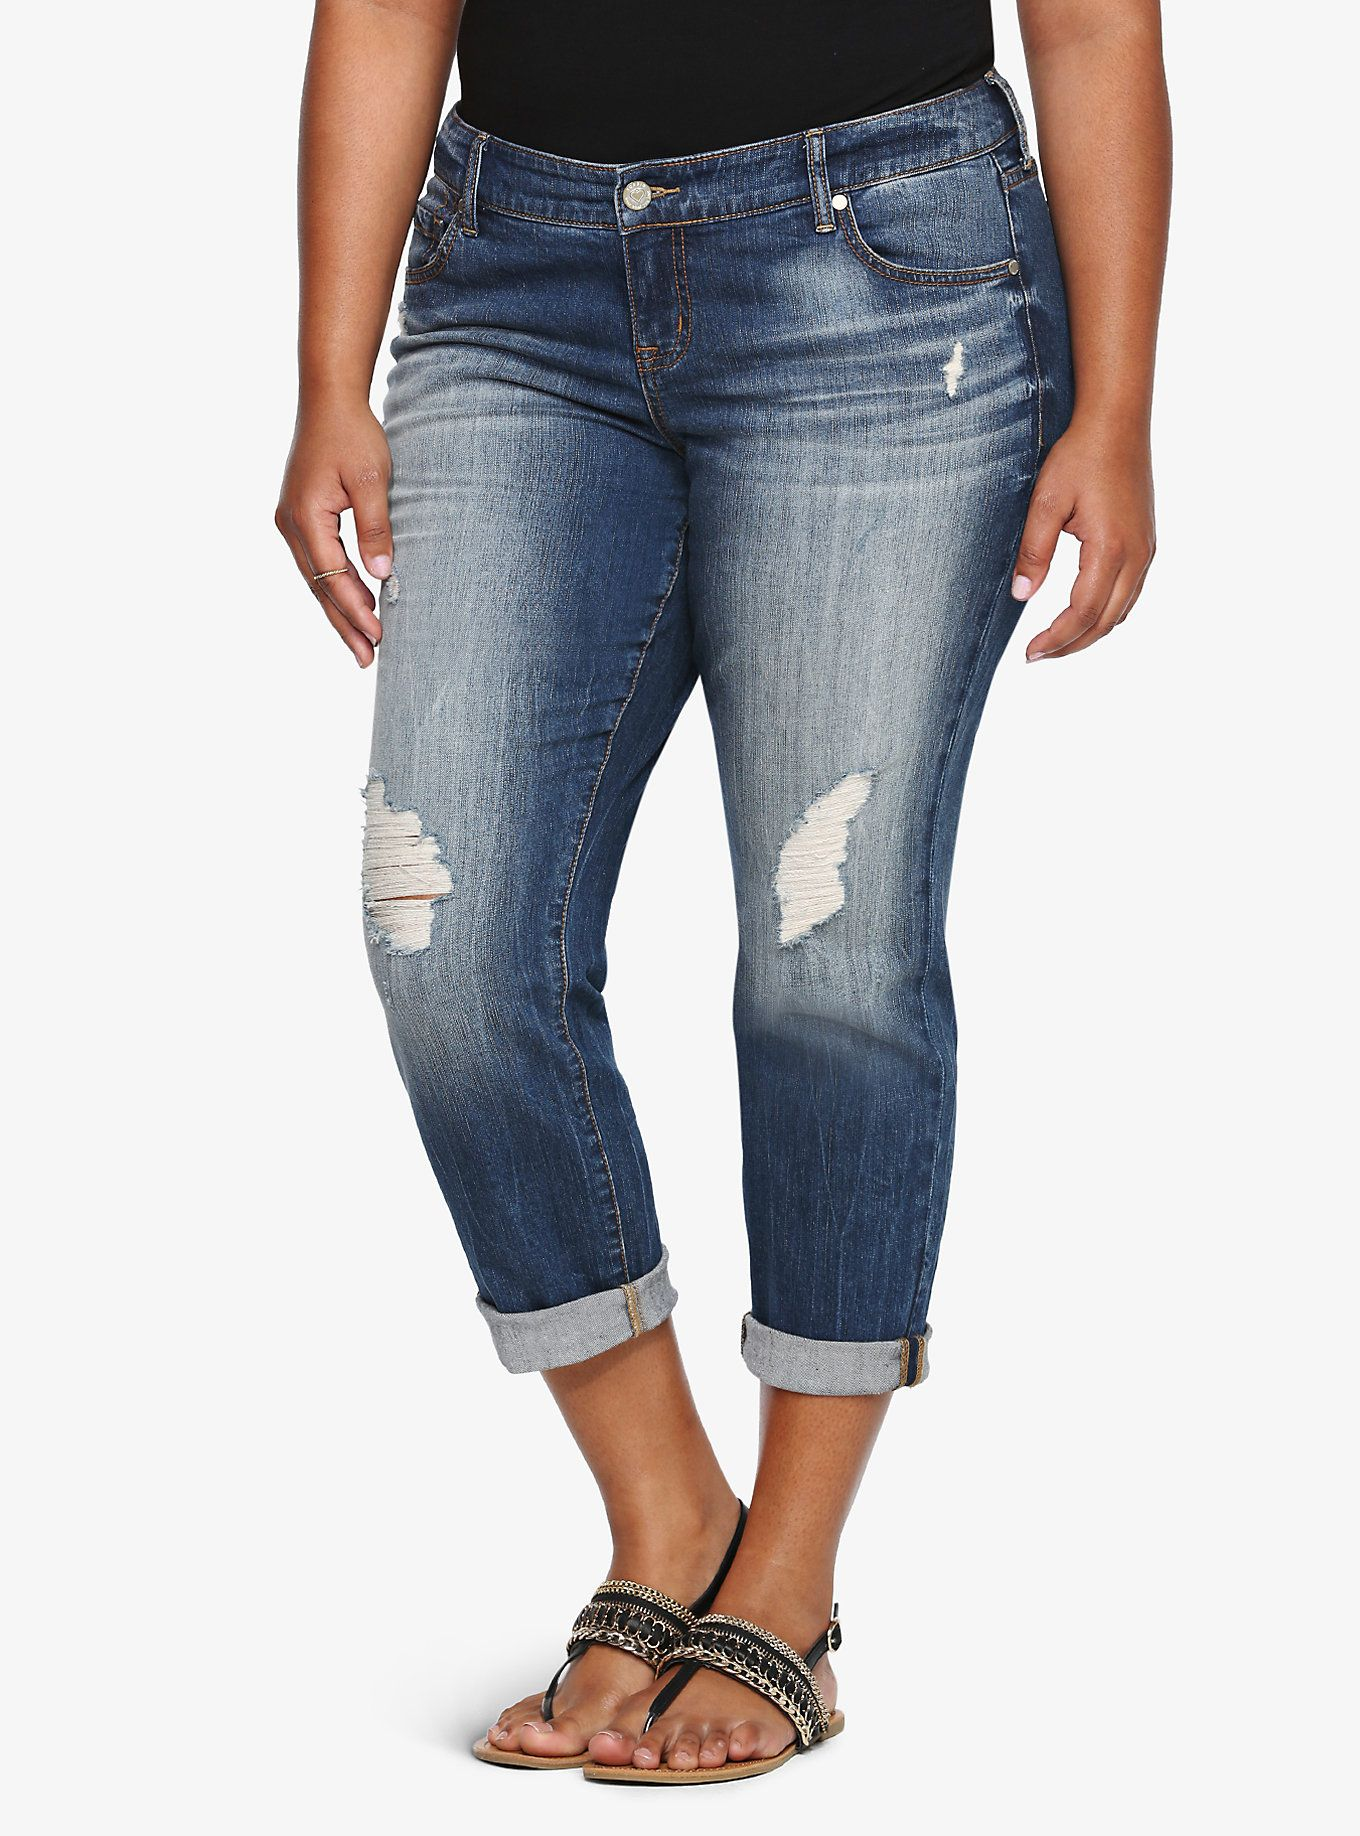 Torrid Cropped Boyfriend Jean - Medium Wash with Destruction ...